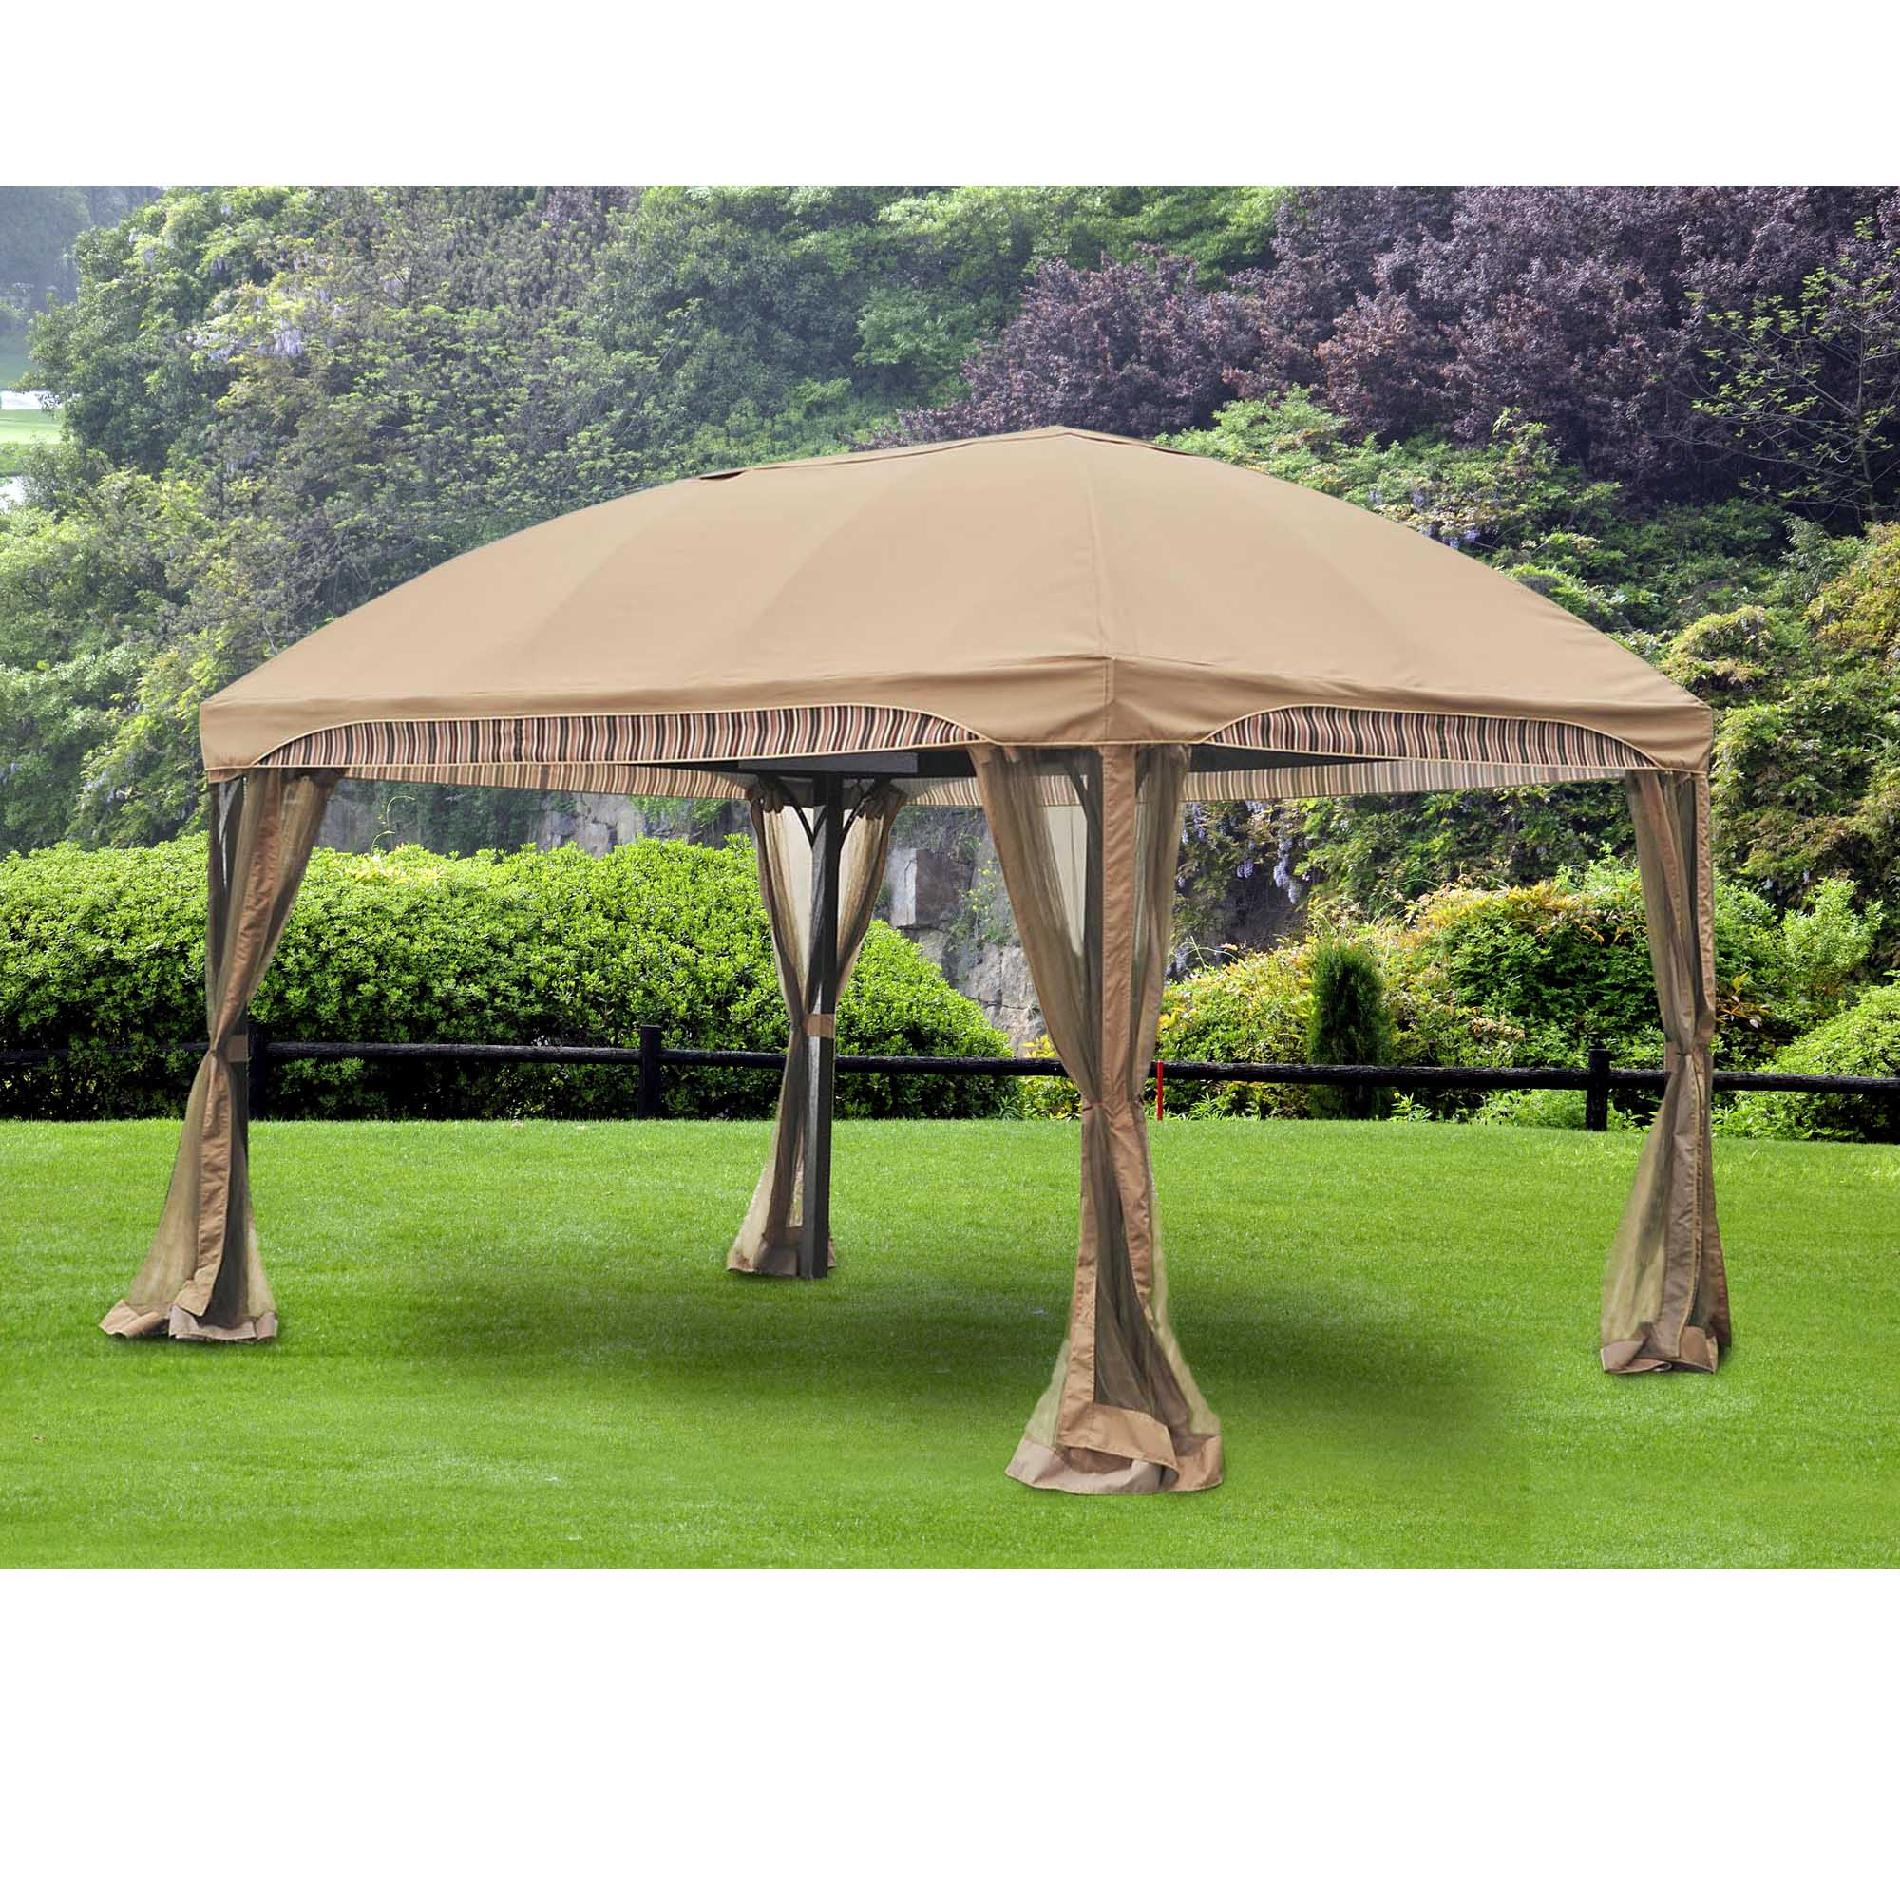 Sunjoy Breeze Domed Top Gazebo 10' X 13' - Outdoor Living Gazebos Canopies & Pergolas